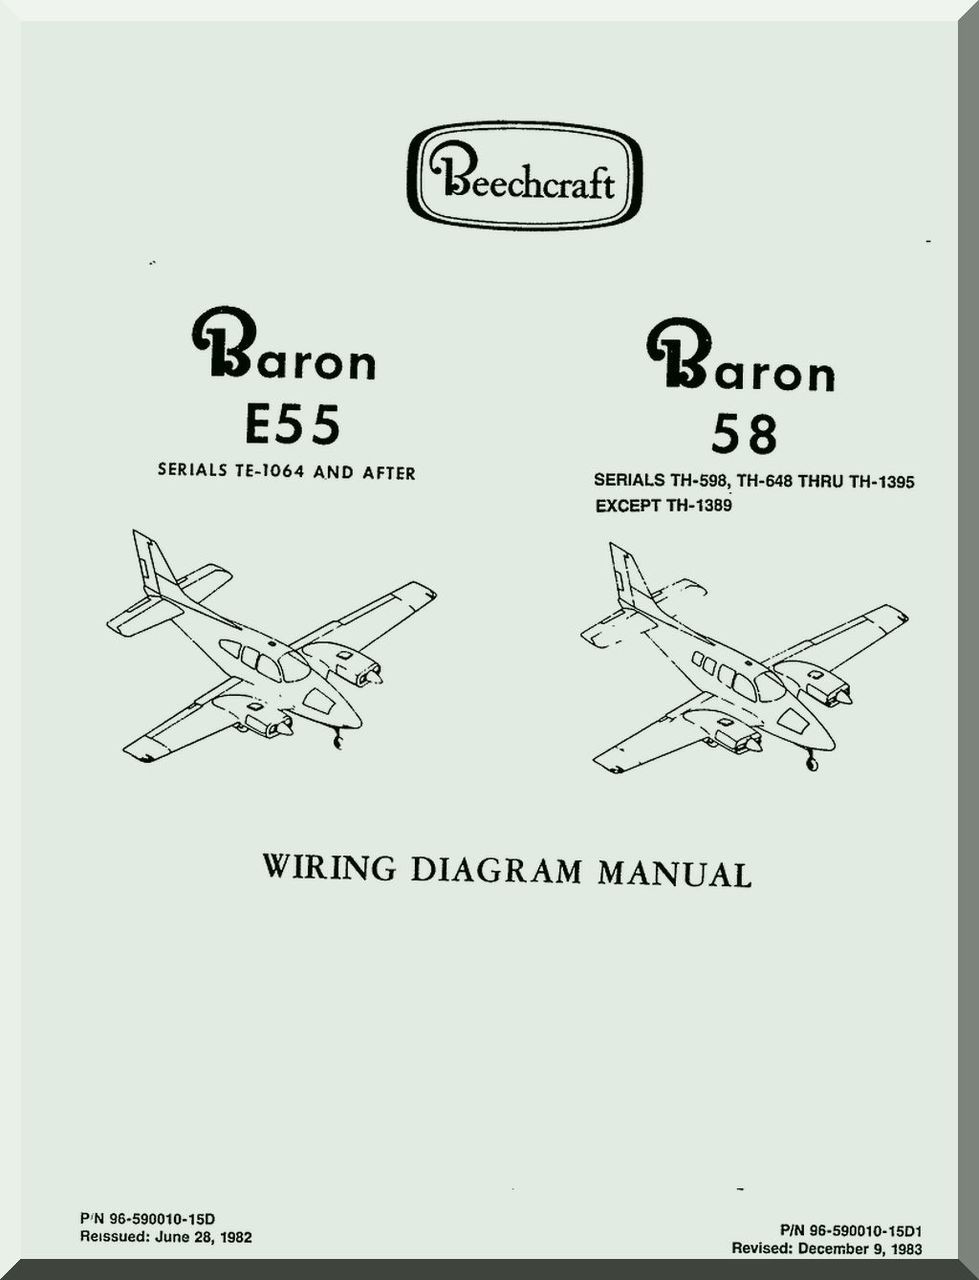 baronE55_58_wiring_diagram_manual0001__61898.1446526384.1280.1280?c\\\\\\\=2 intercom wiring diagram & wiring diagram for led lights how to read aircraft wiring diagrams at readyjetset.co